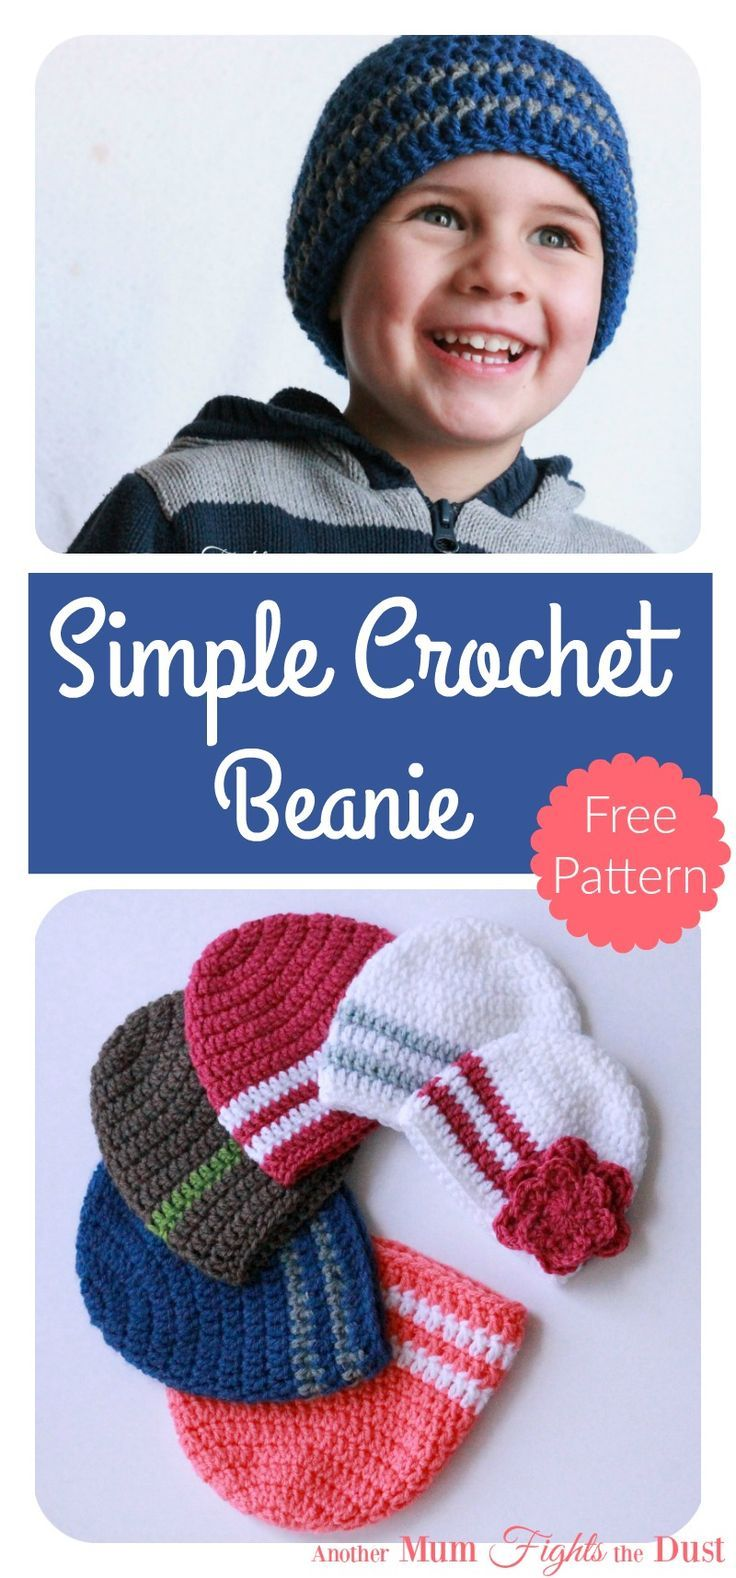 Simple Crochet Beanie Free Pattern Awesome Inspiration Design